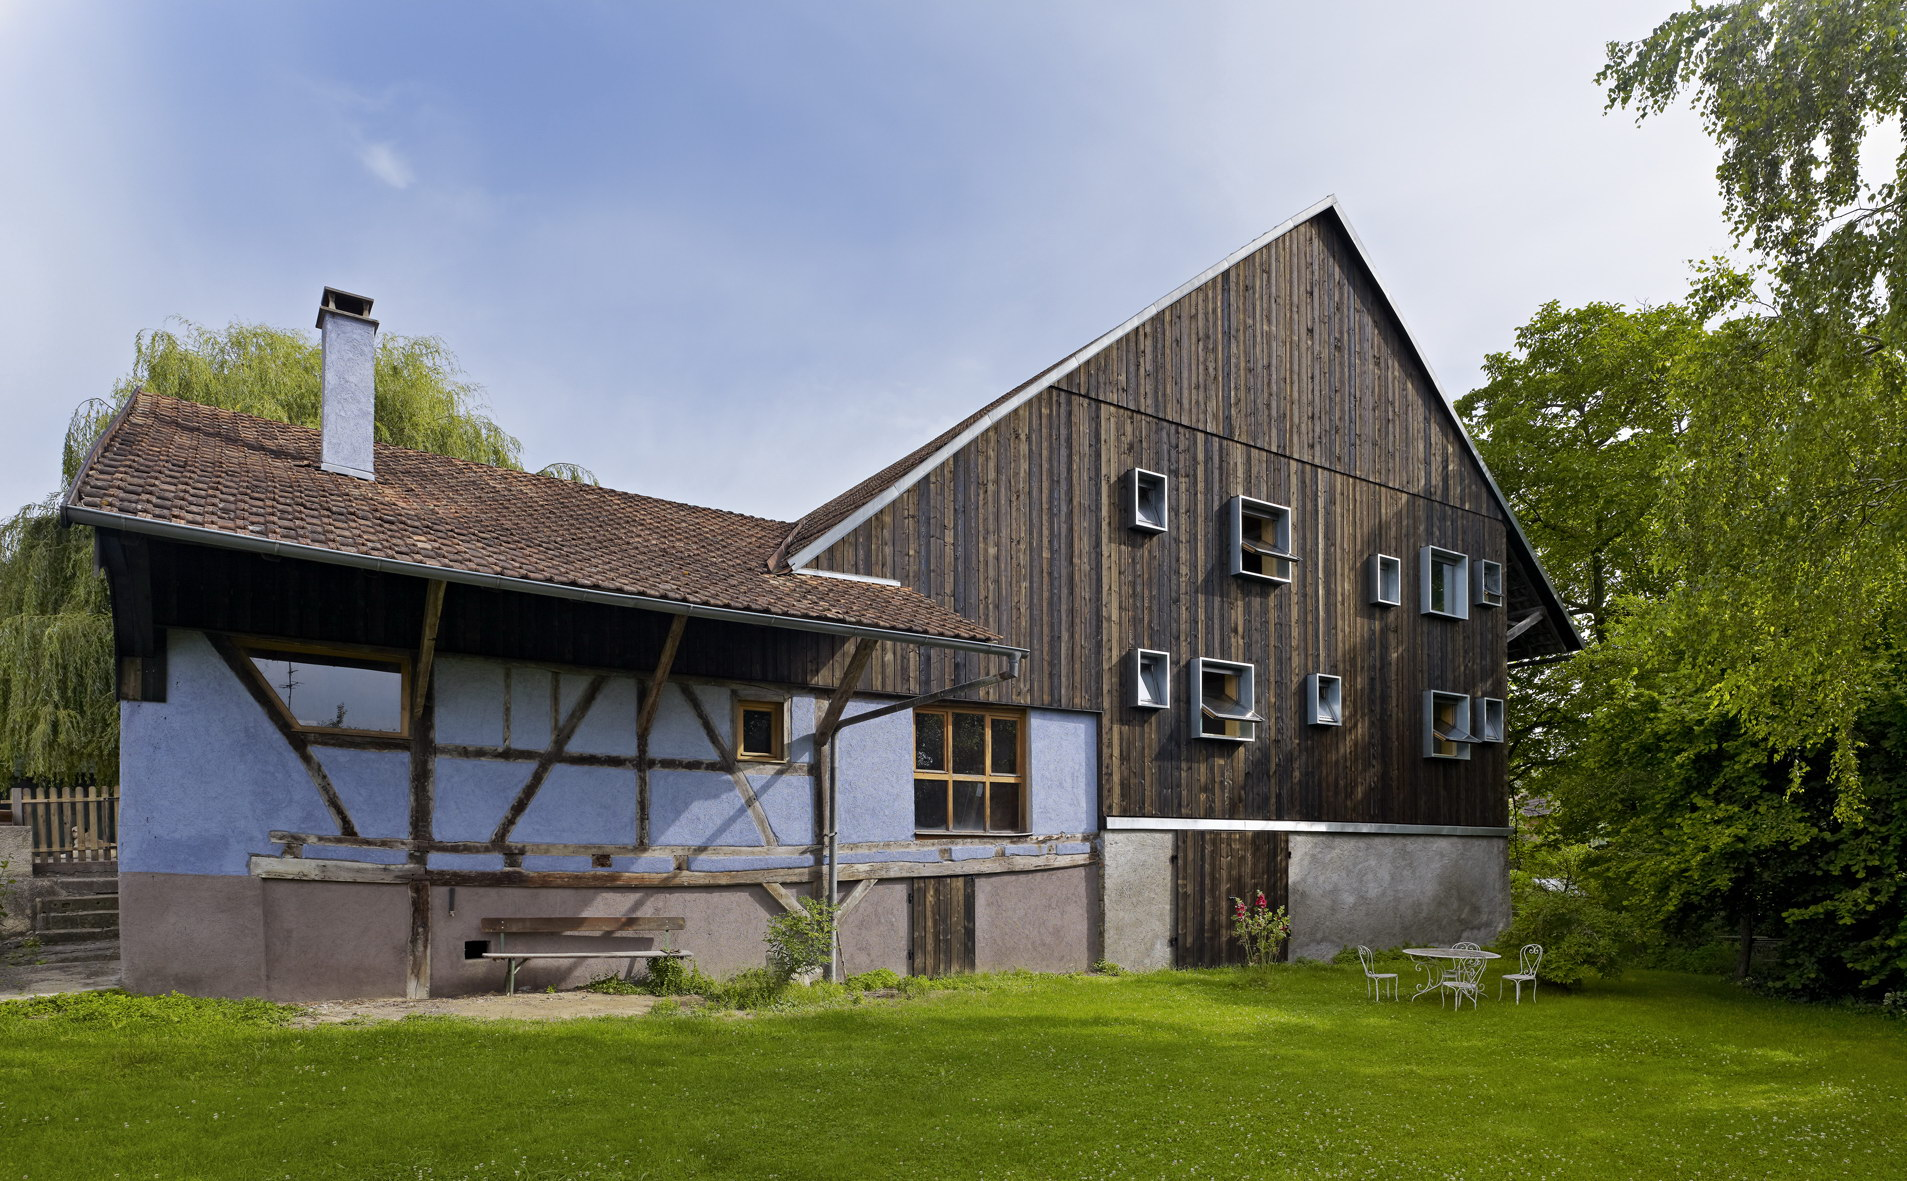 Farm Building Renovation by Loïc Picquet Architecte